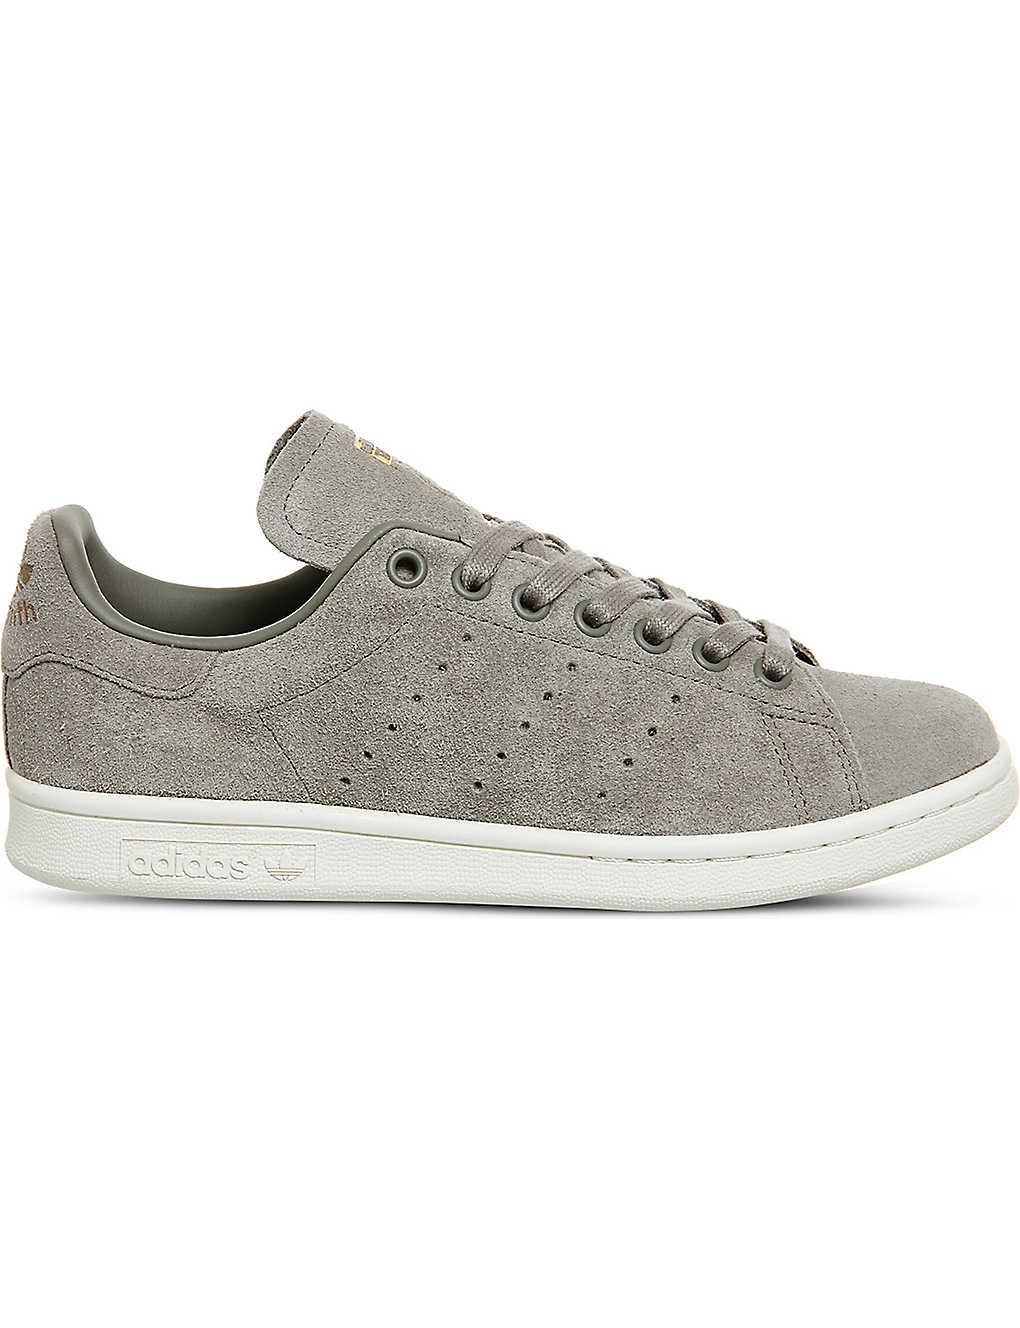 9bcf7cf1f503 ADIDAS - Stan Smith suede trainers